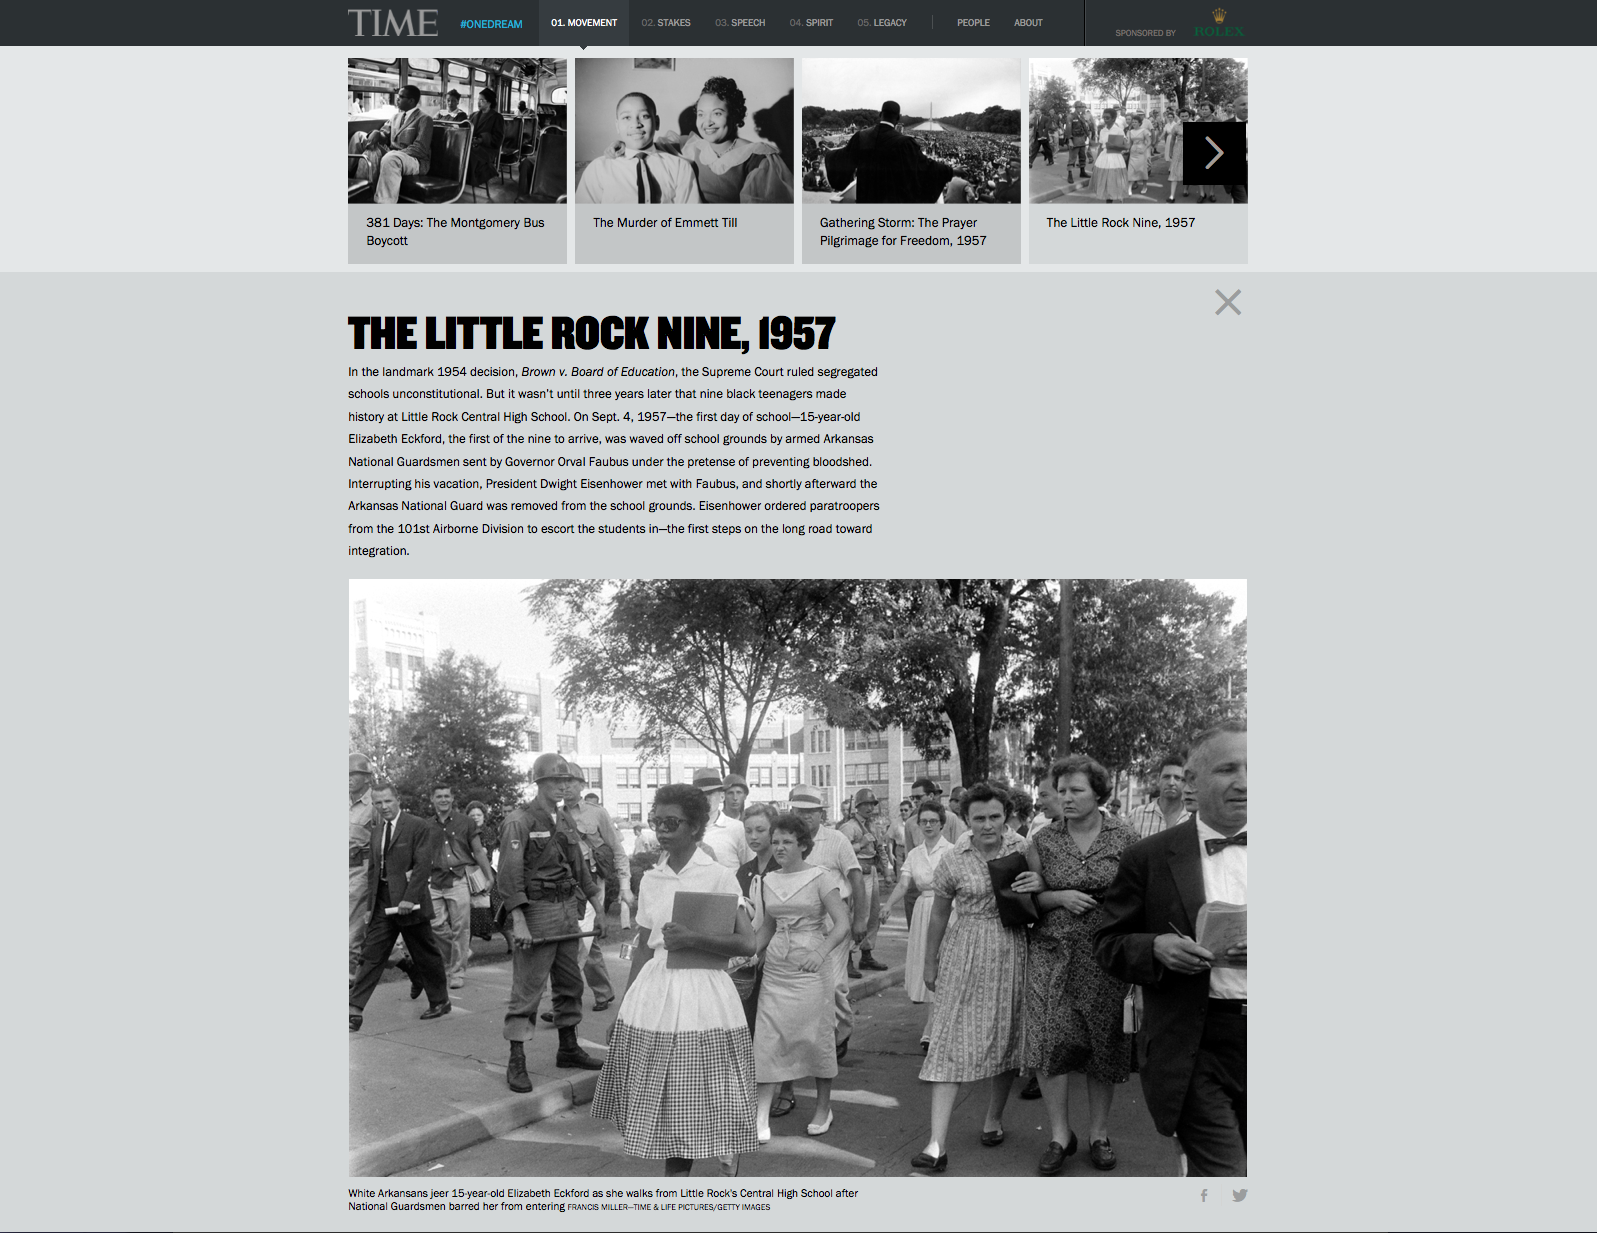 TIME's new microsite includes more than 18 galleries of images culled from the vast LIFE archives, including some never-before-published photographs from the march.